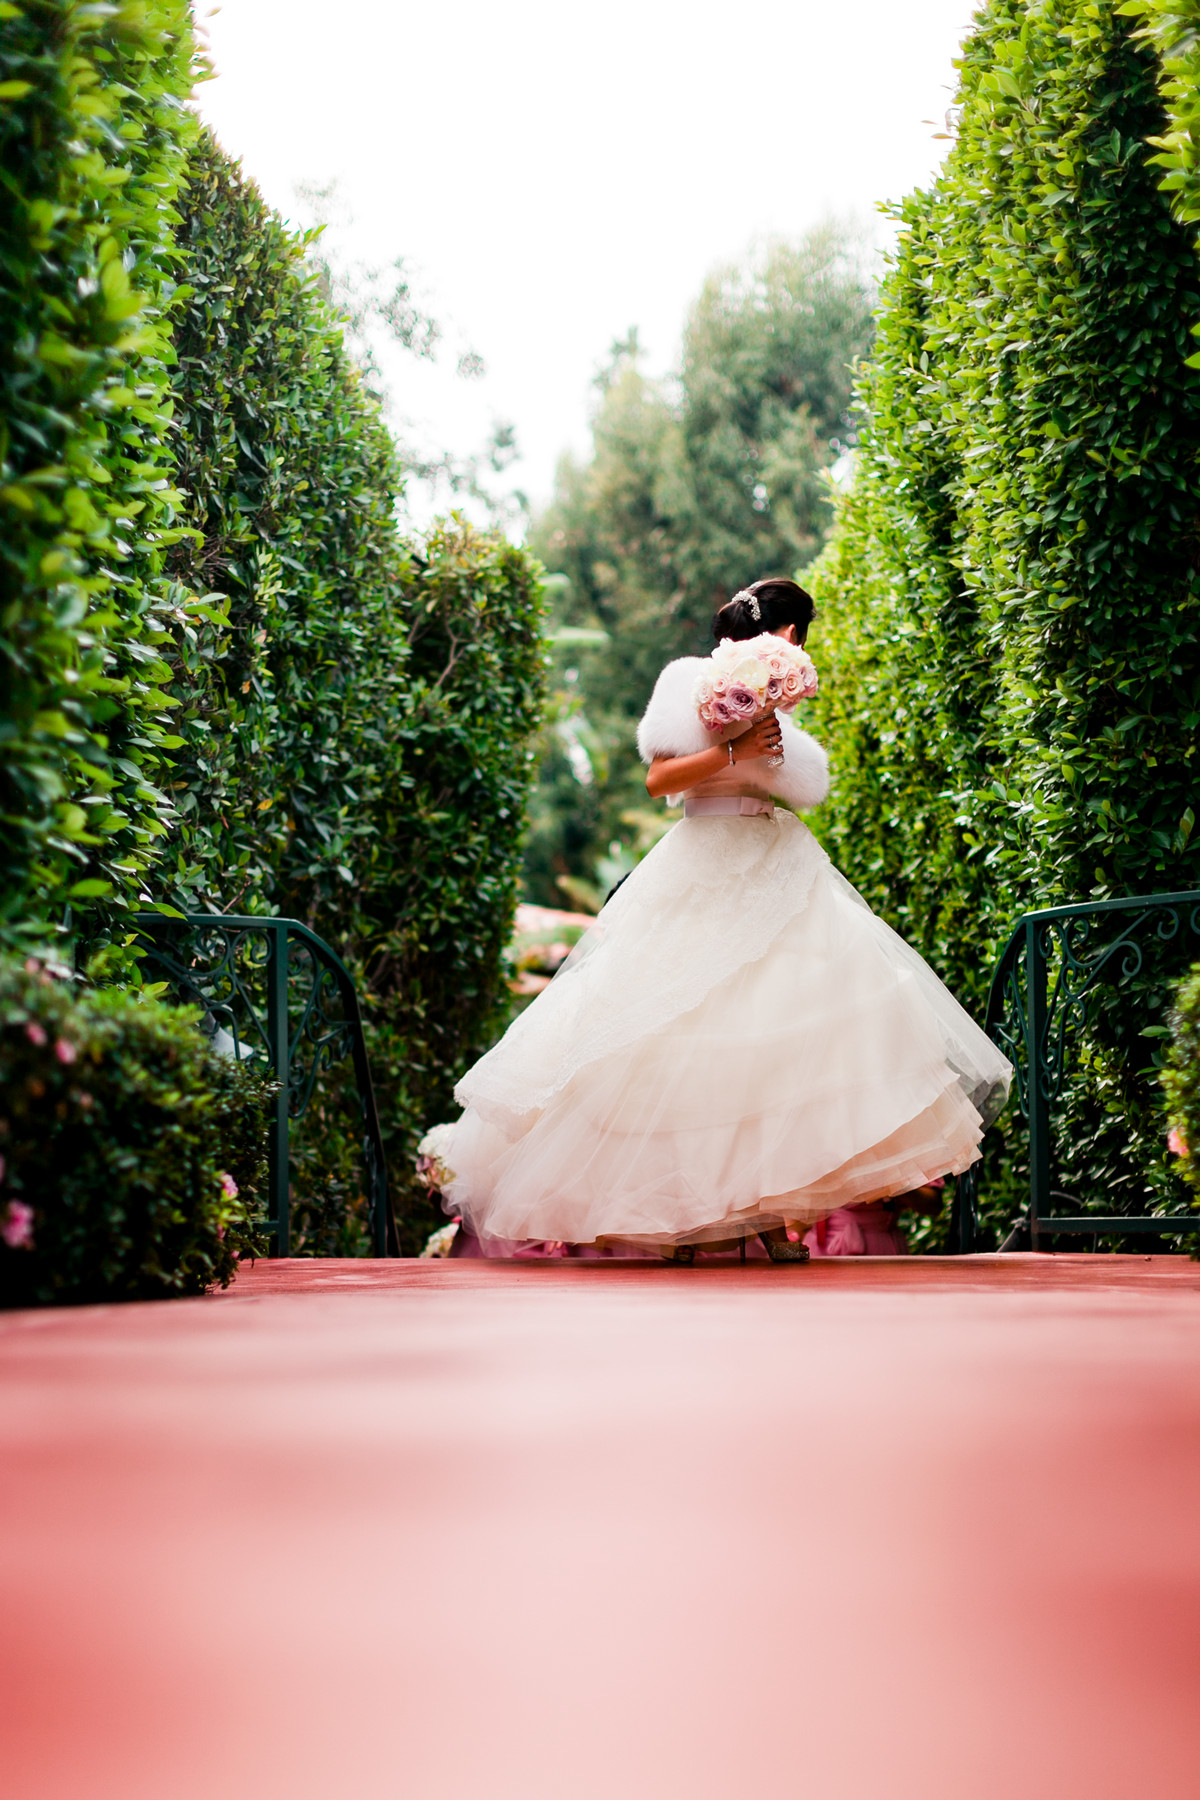 Bride in swirling ballgown and fur wrap in hedge garden - photo by John and Joseph Photography